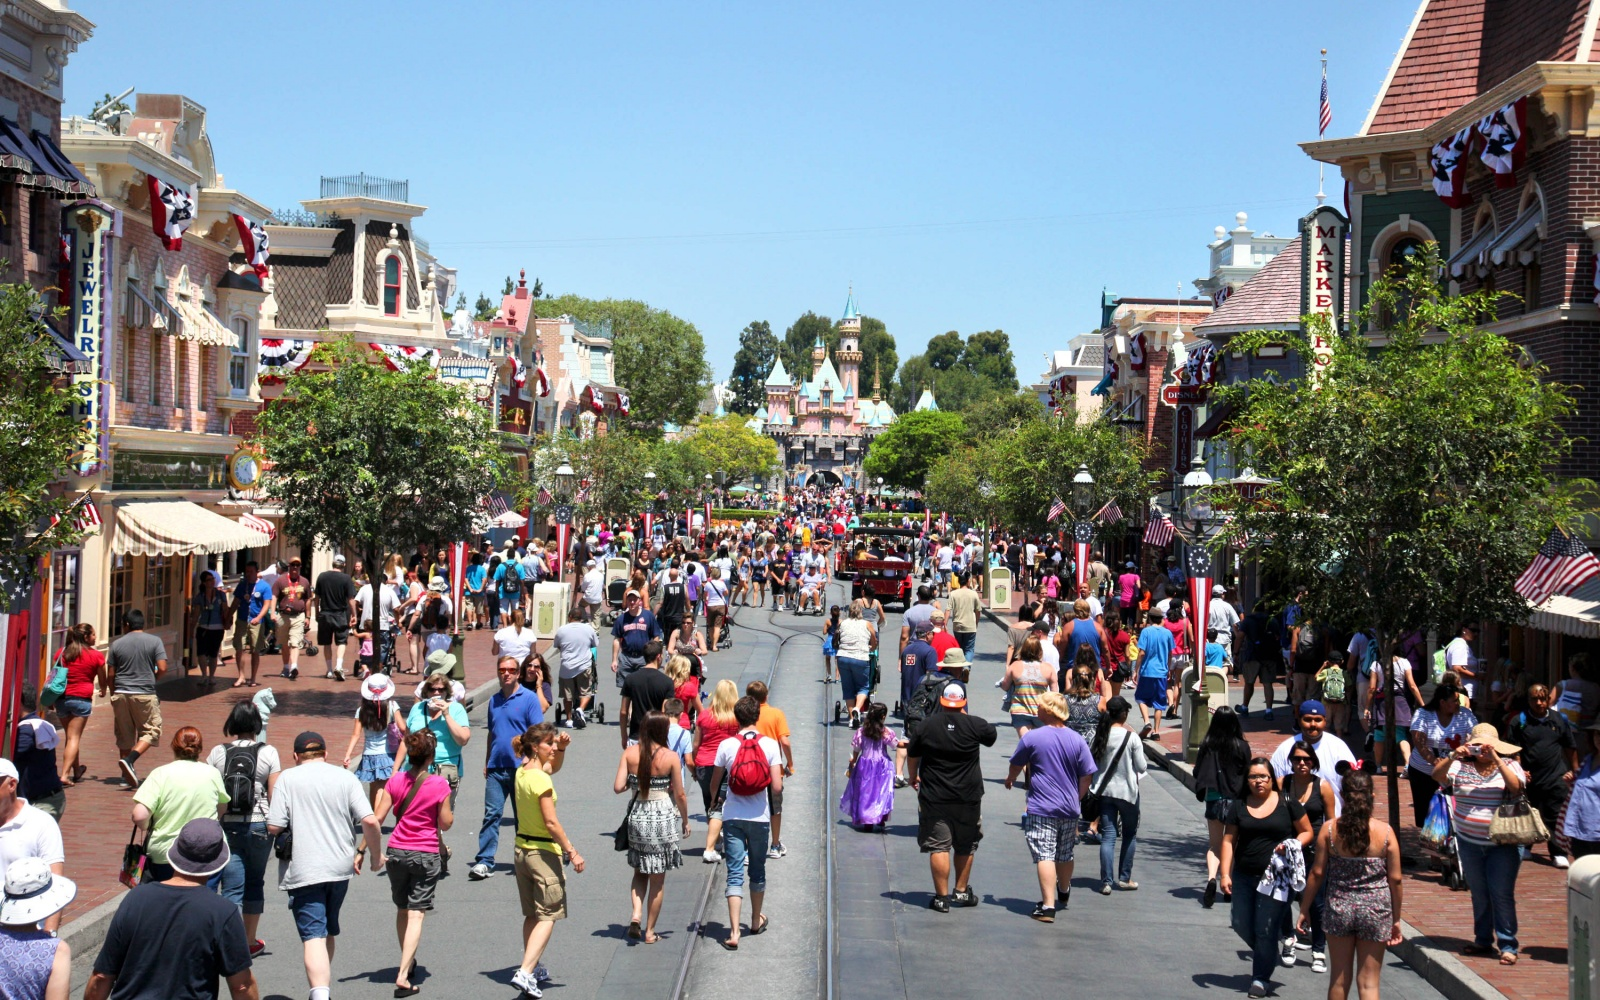 Disneyland Shuts Down Rides To Prepare For Star Wars Land